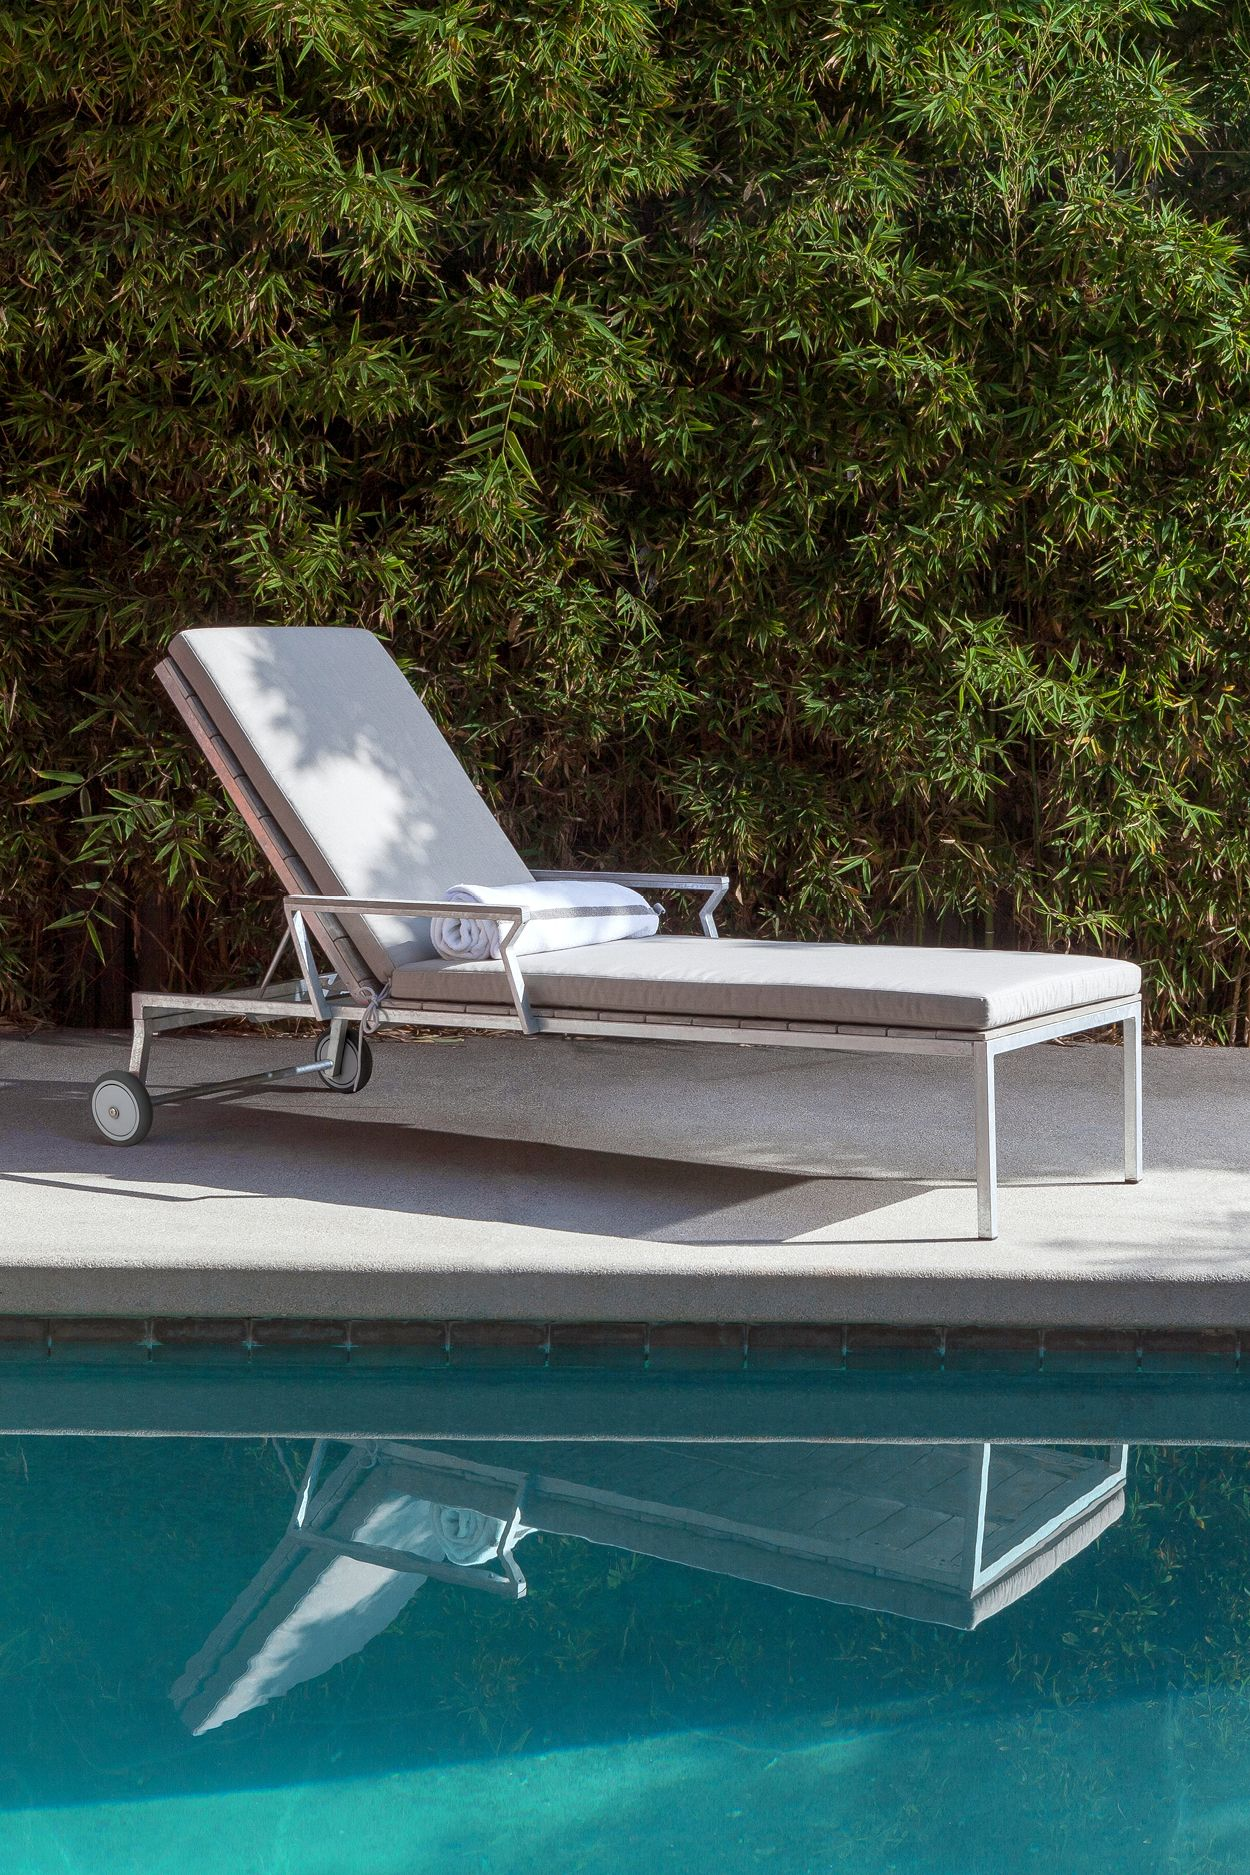 Power Chill This Is The Kind Of Lounger Where You Take Calls And Give Orders Modern Outdoor Lounge Chair Pool Patio Furniture Lounge Chair Outdoor Modern outdoor pool lounge chairs